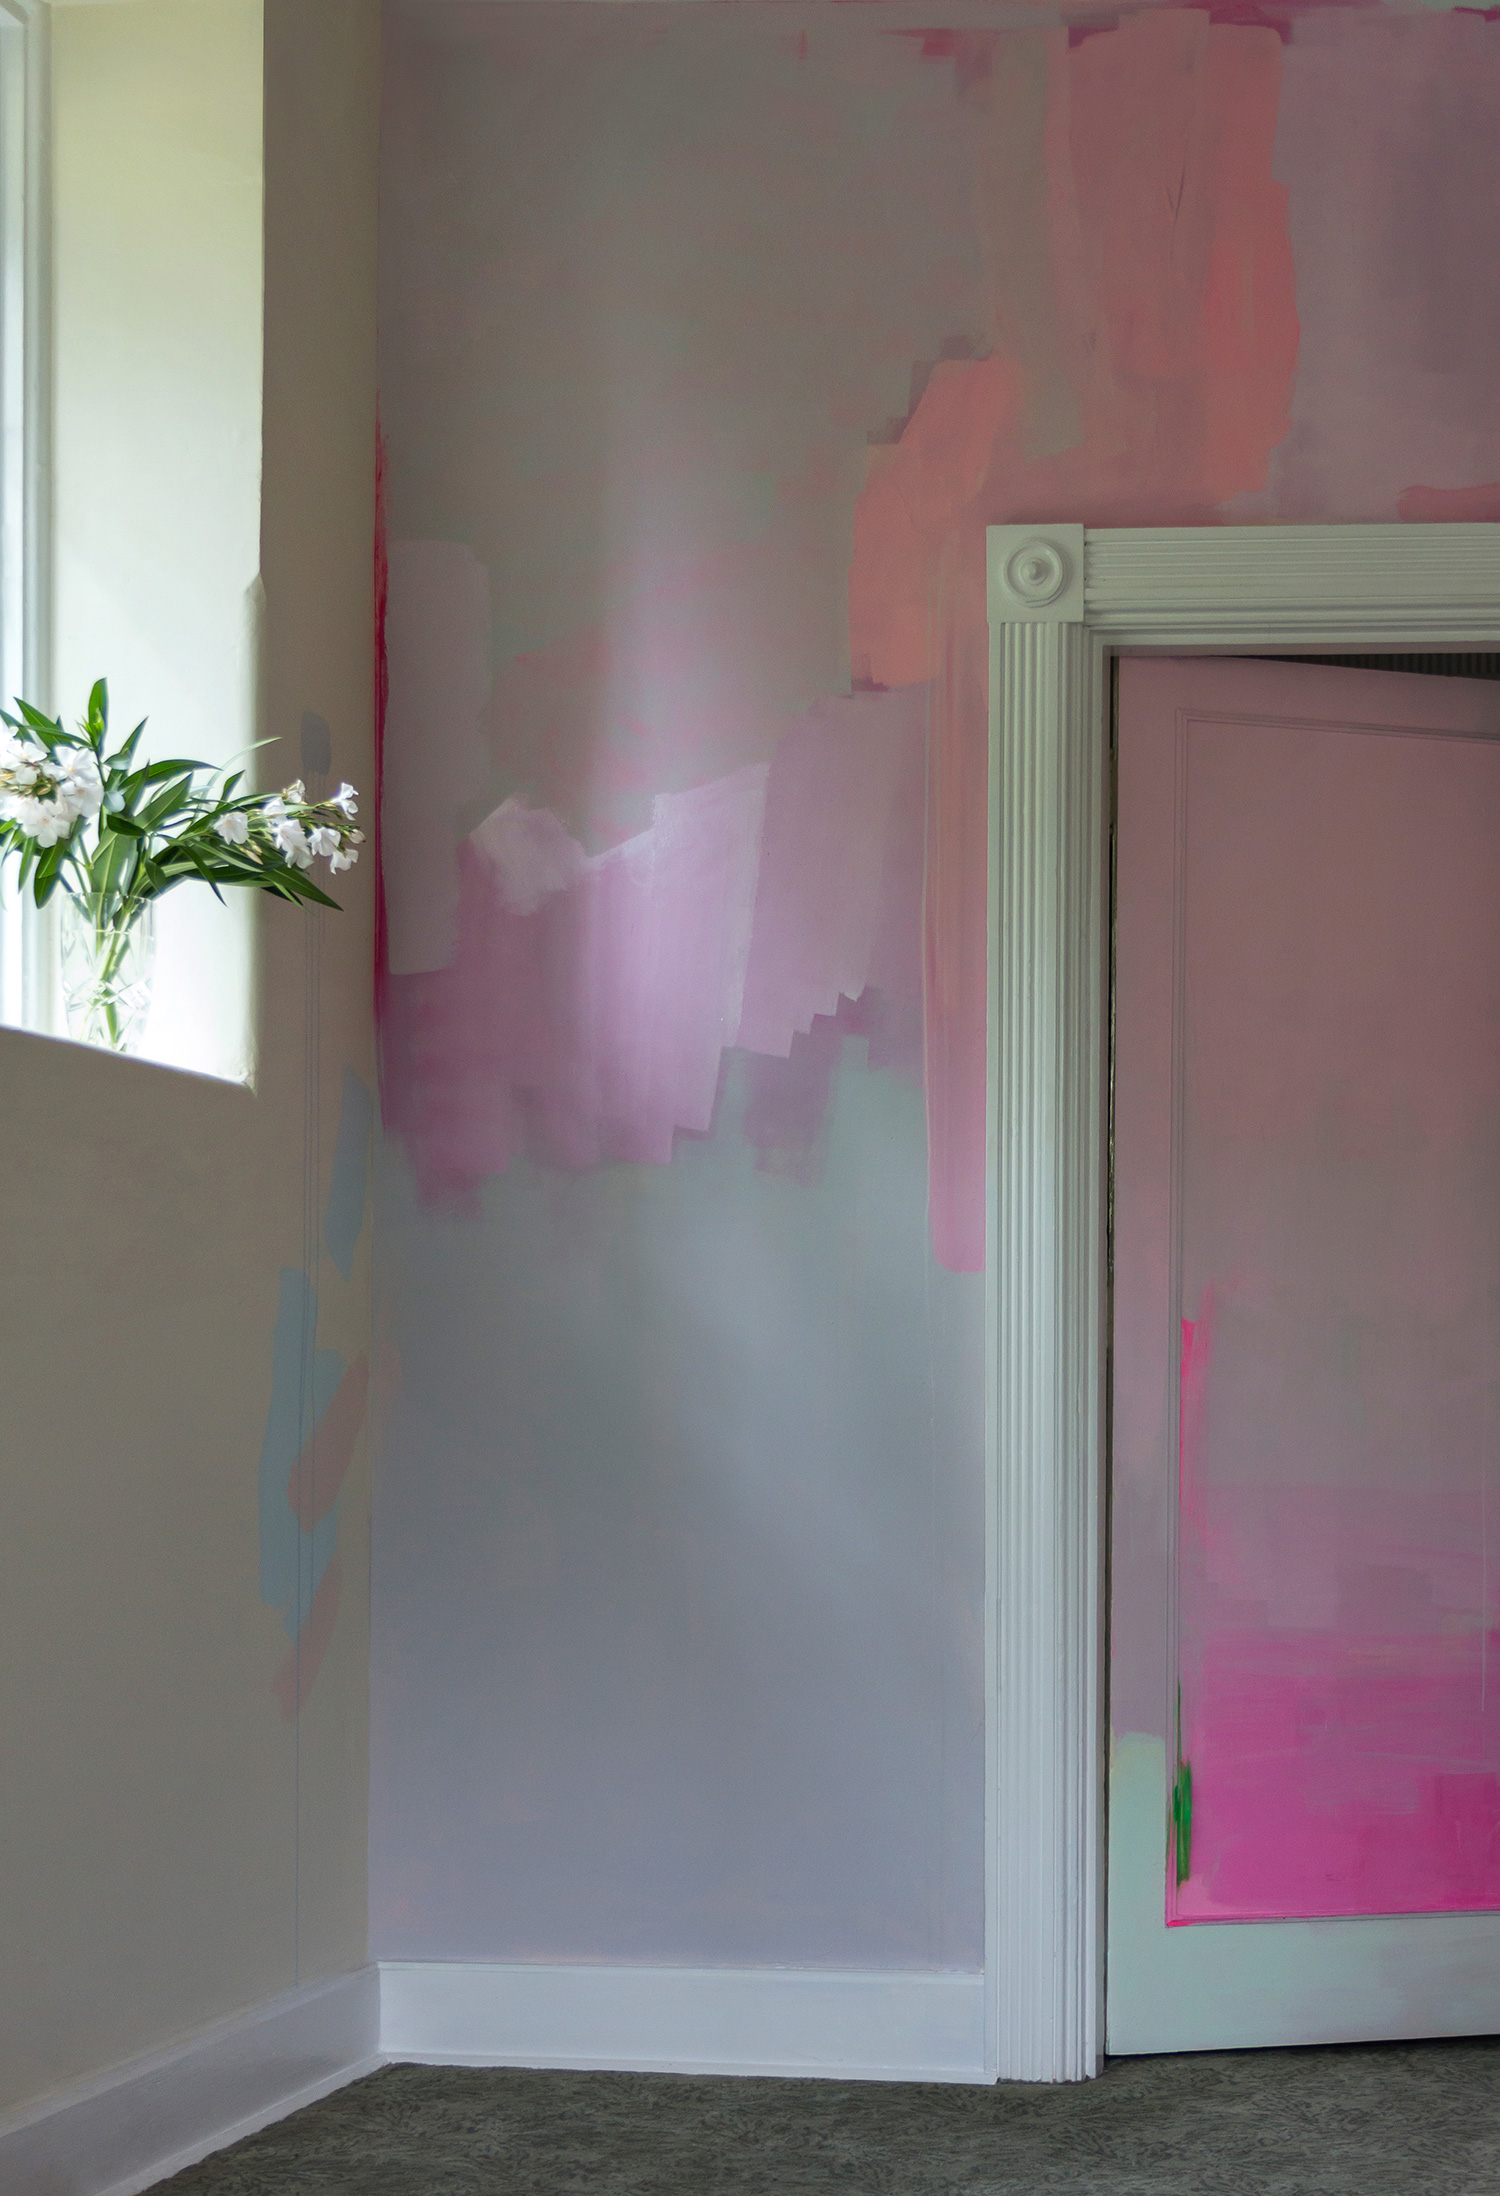 Contemporary hand painted mural features splashes of pastel paint and pops of neon, foliage on the windowsill contrasts with the flat color.